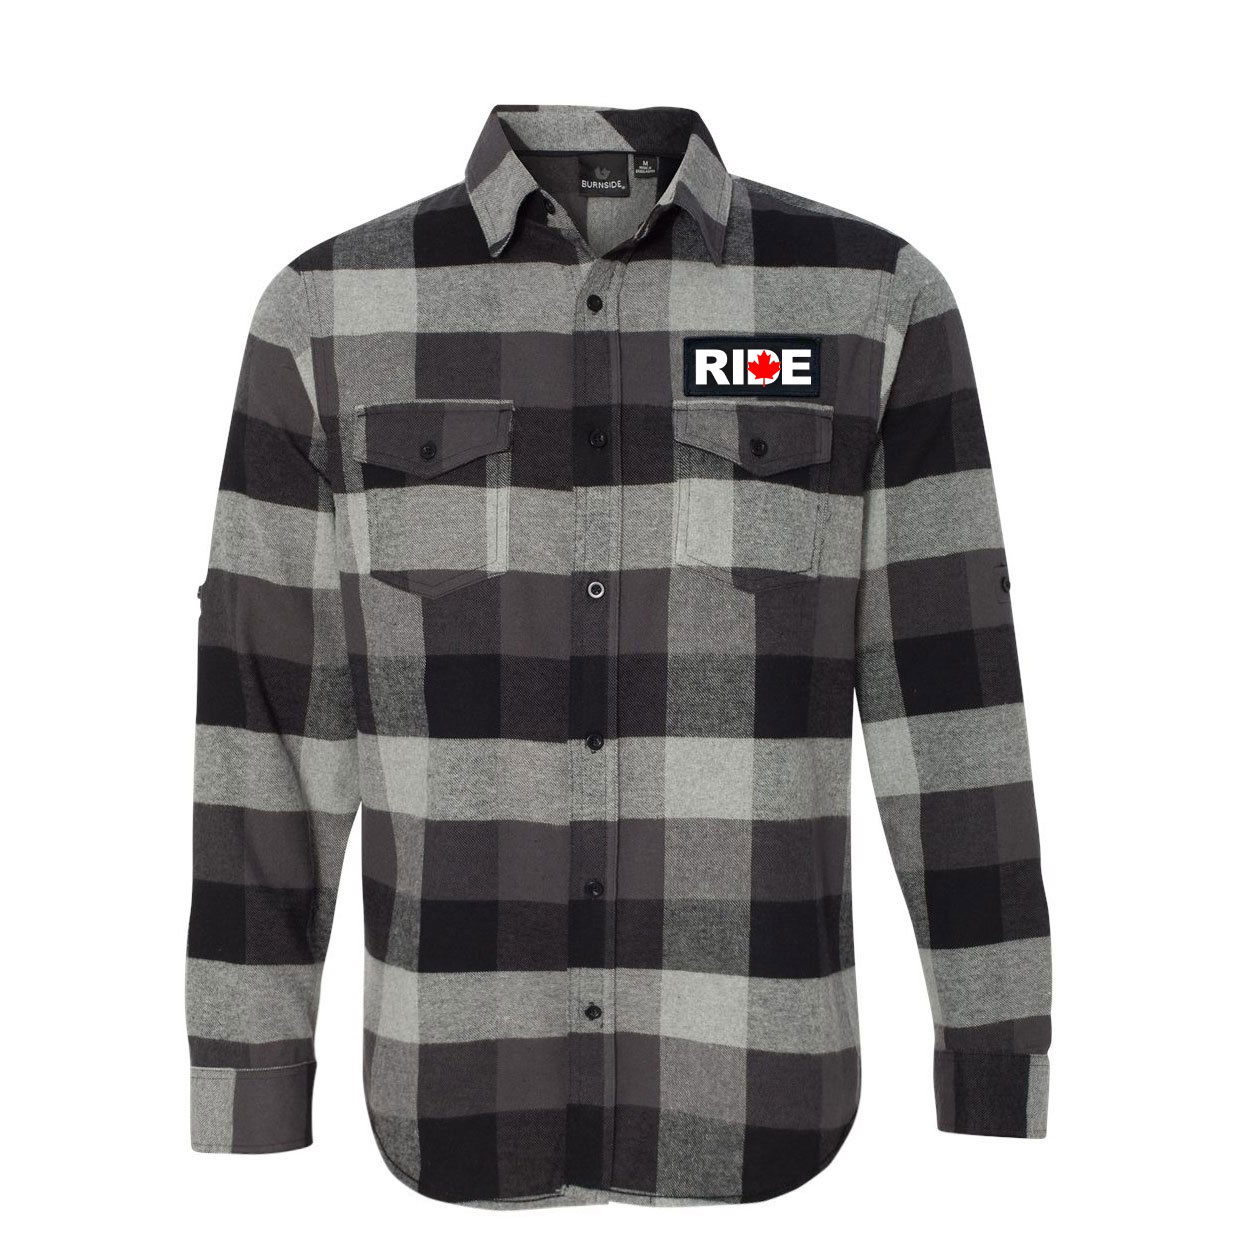 Ride Canada Classic Unisex Long Sleeve Woven Patch Flannel Shirt Black/Gray (White Logo)